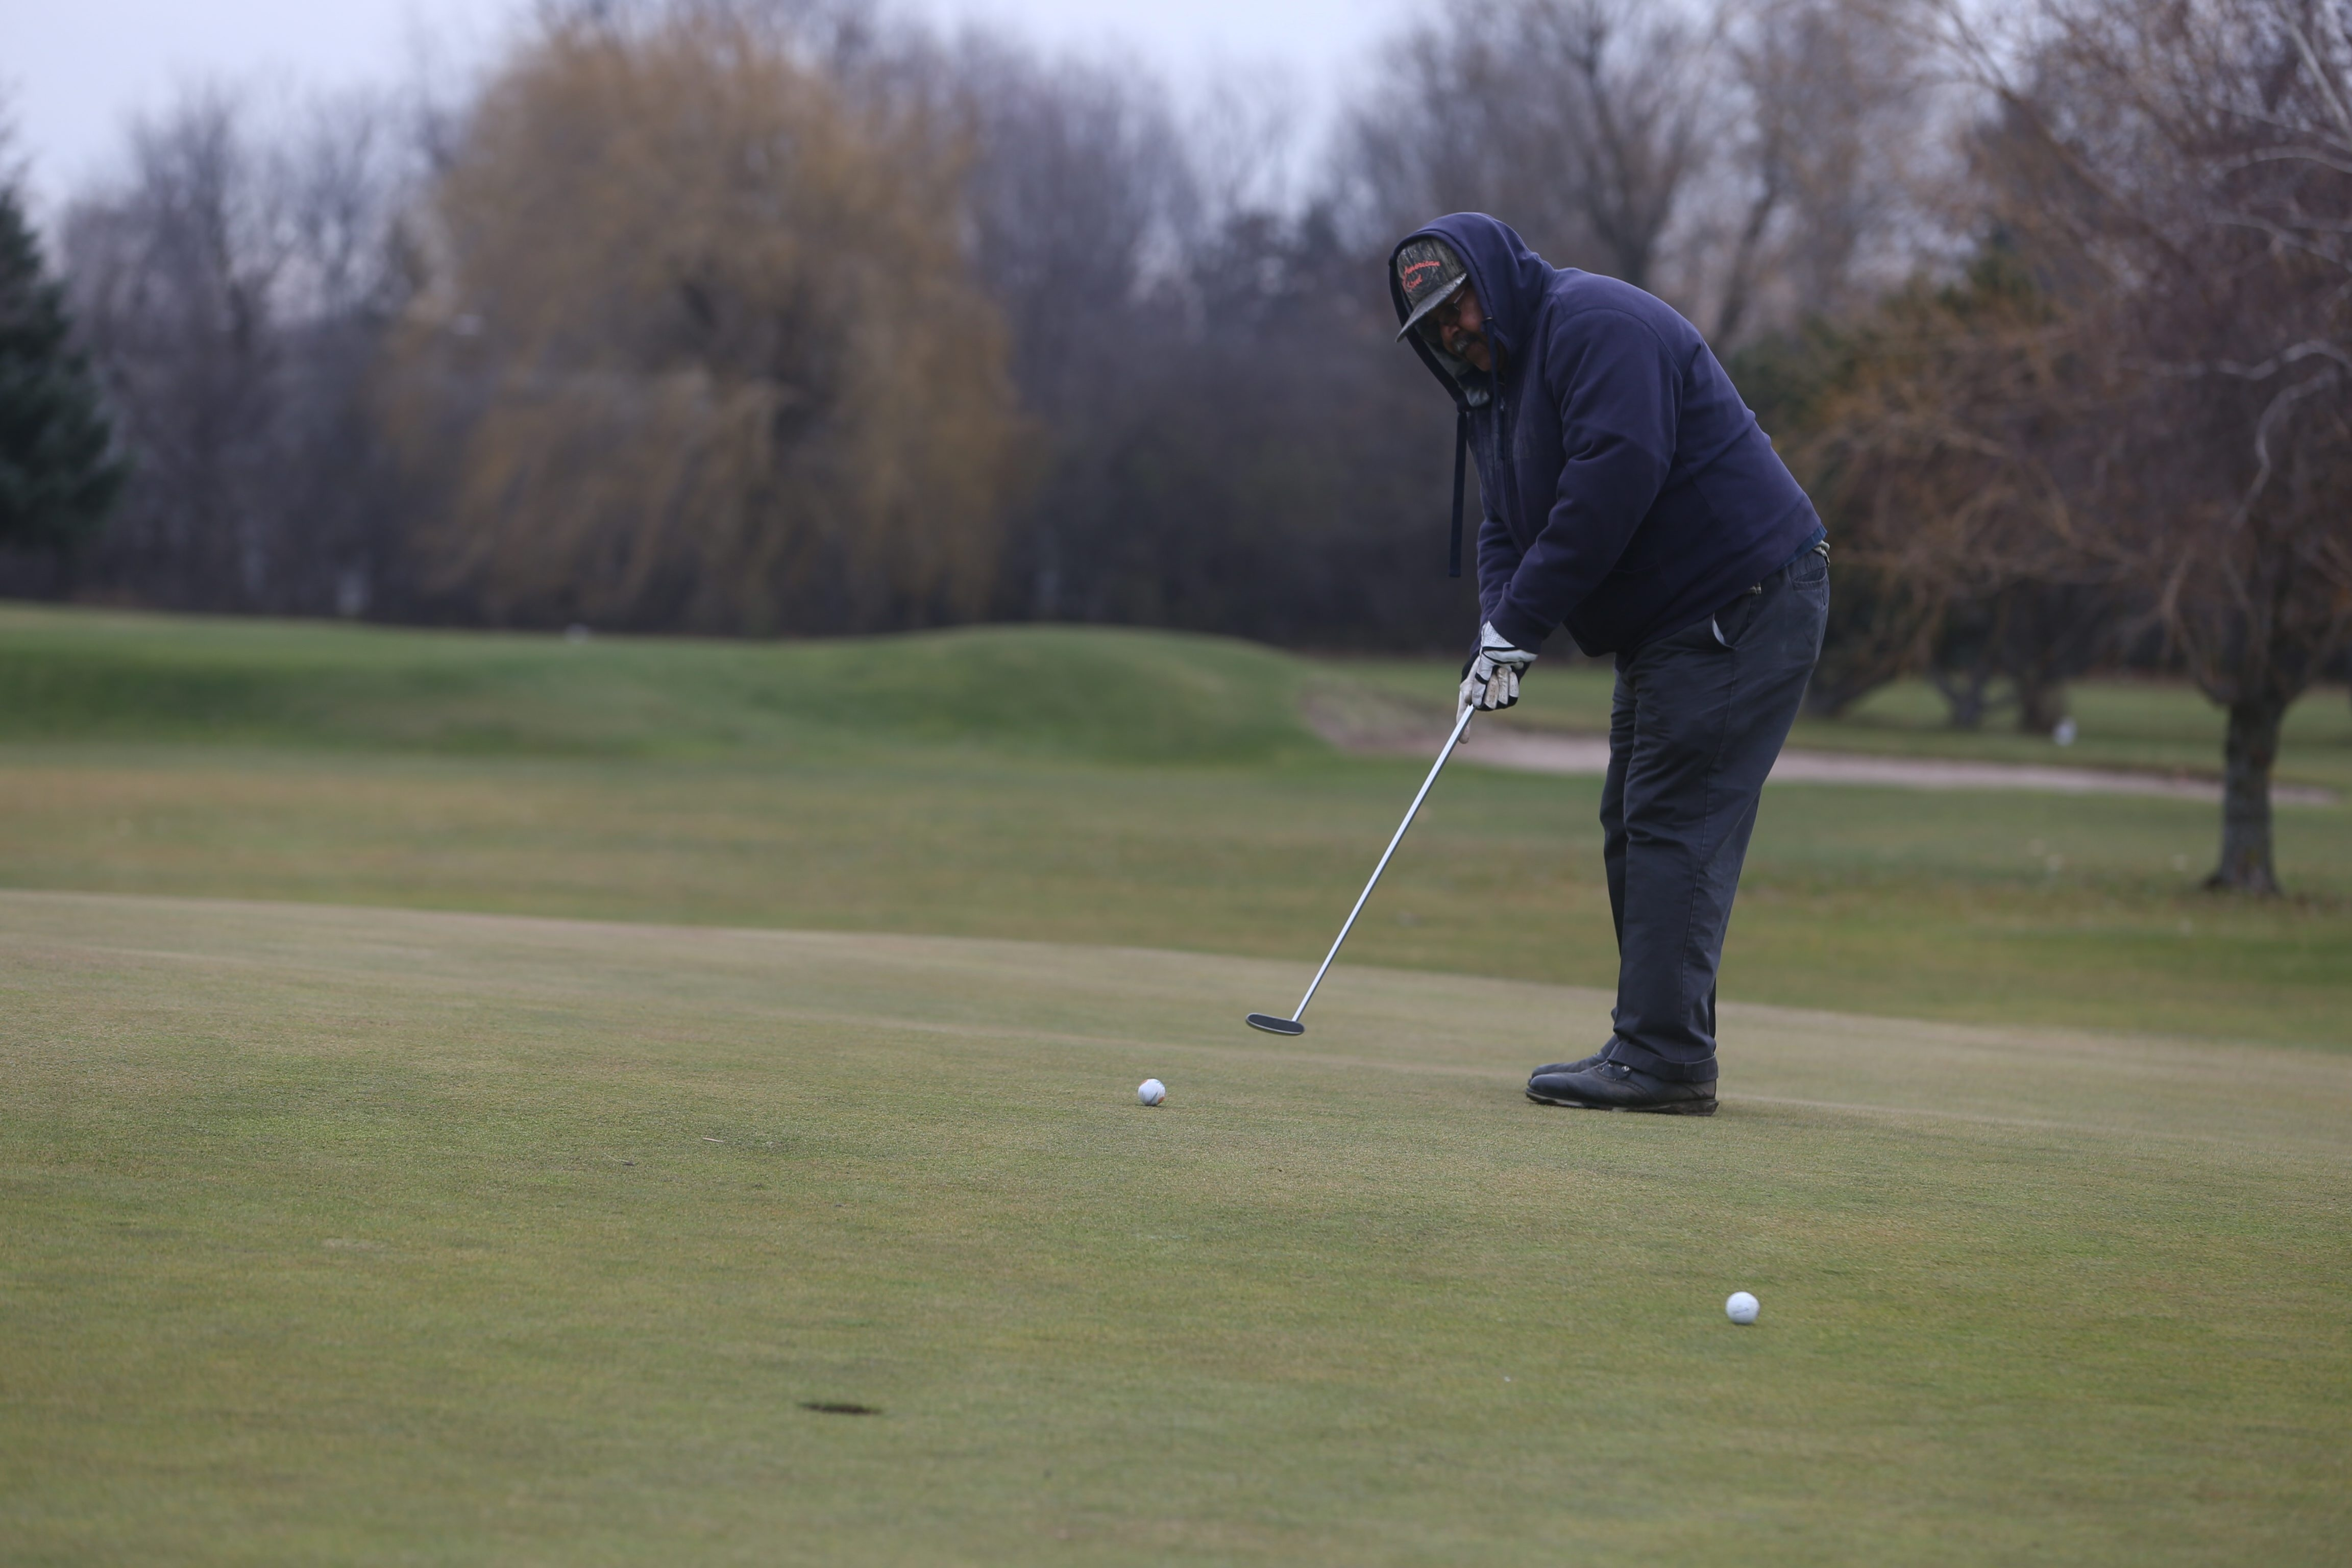 Golfers such as Carl Smith, shown here putting on the 15th hole at Grover Cleveland Golf Course on Dec. 10, are taking advantage of the warm weather and clear skies to get back out on the course.